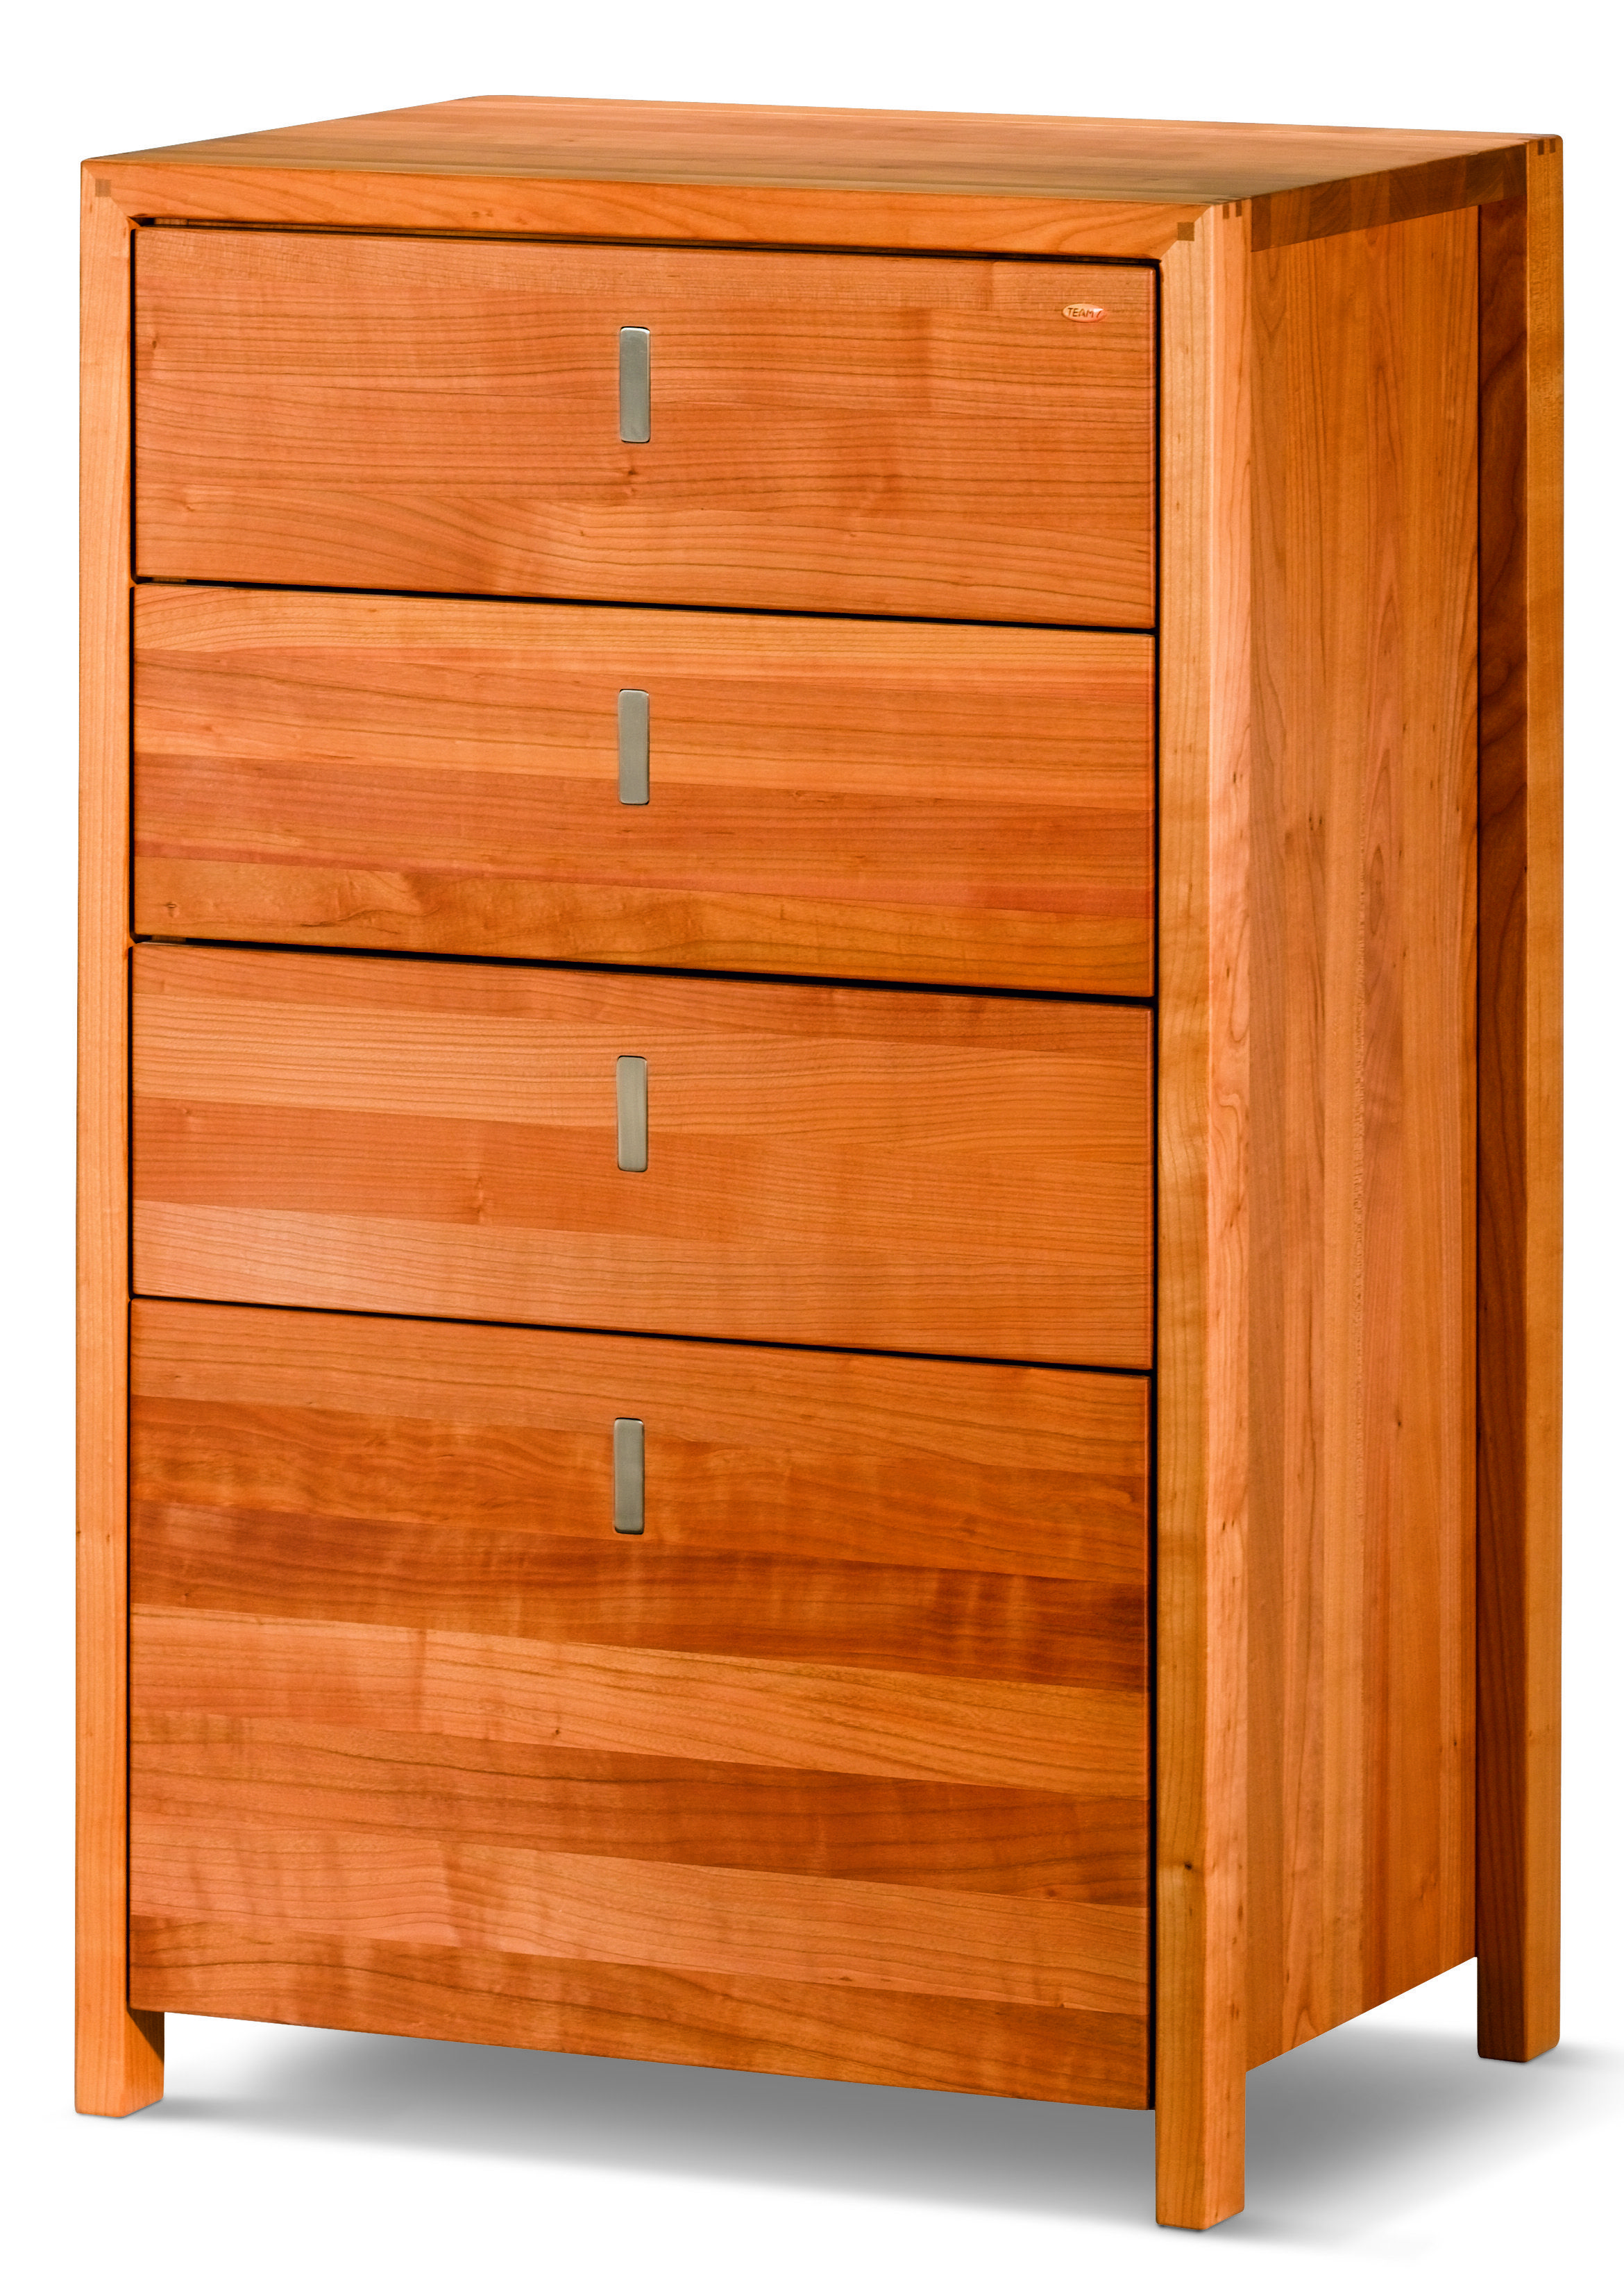 Valore Chest Of Drawers By Team7 In Solid Cherry Bedroom Design Dresser